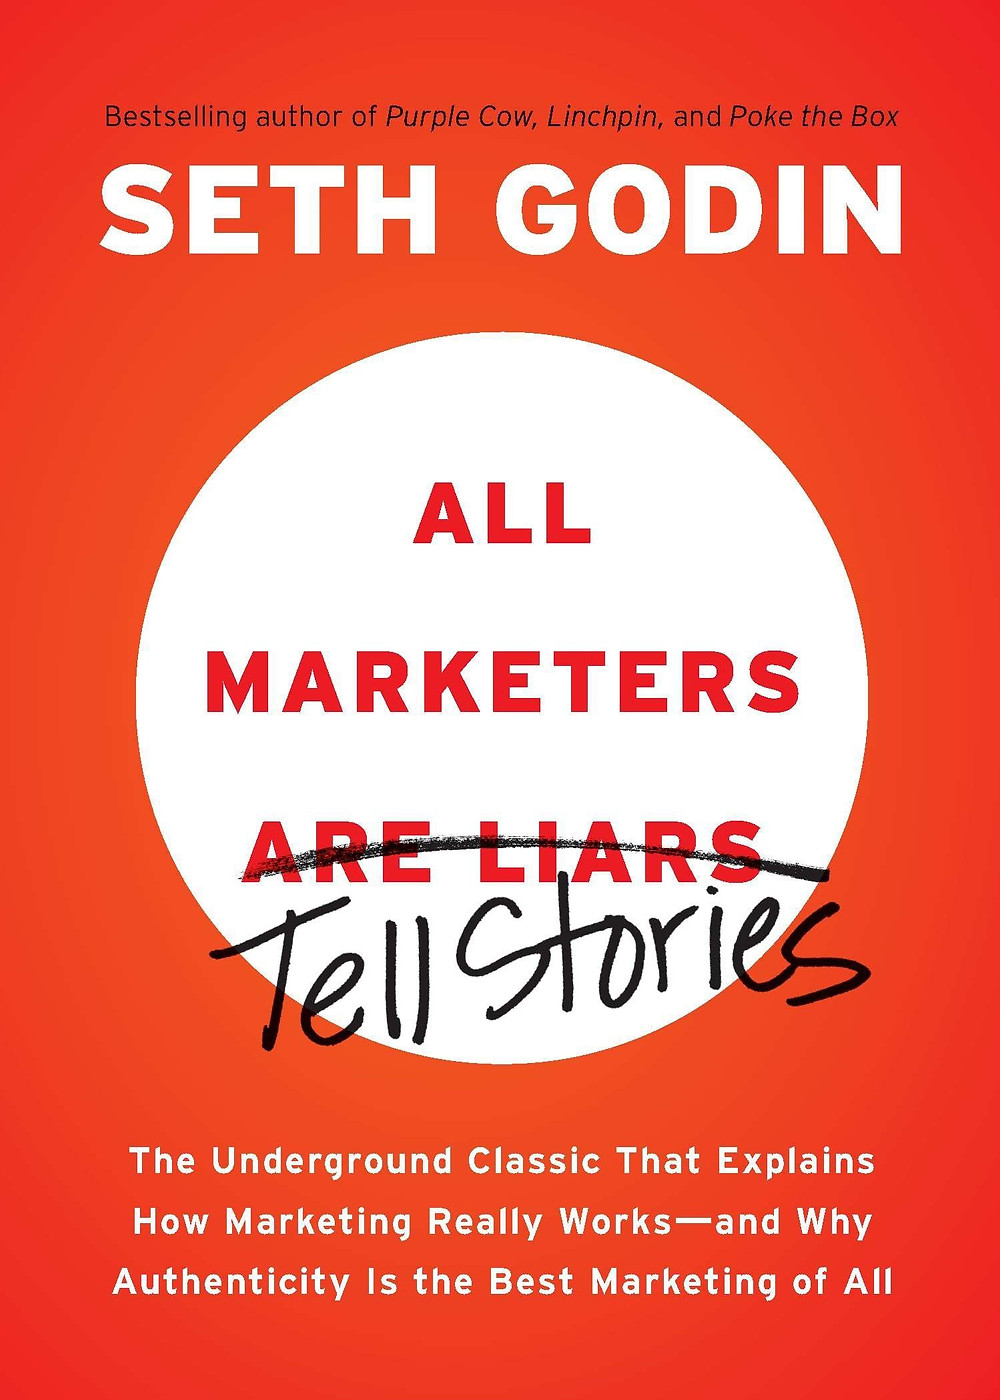 The cover of All Marketers Are Liars by Seth Godin